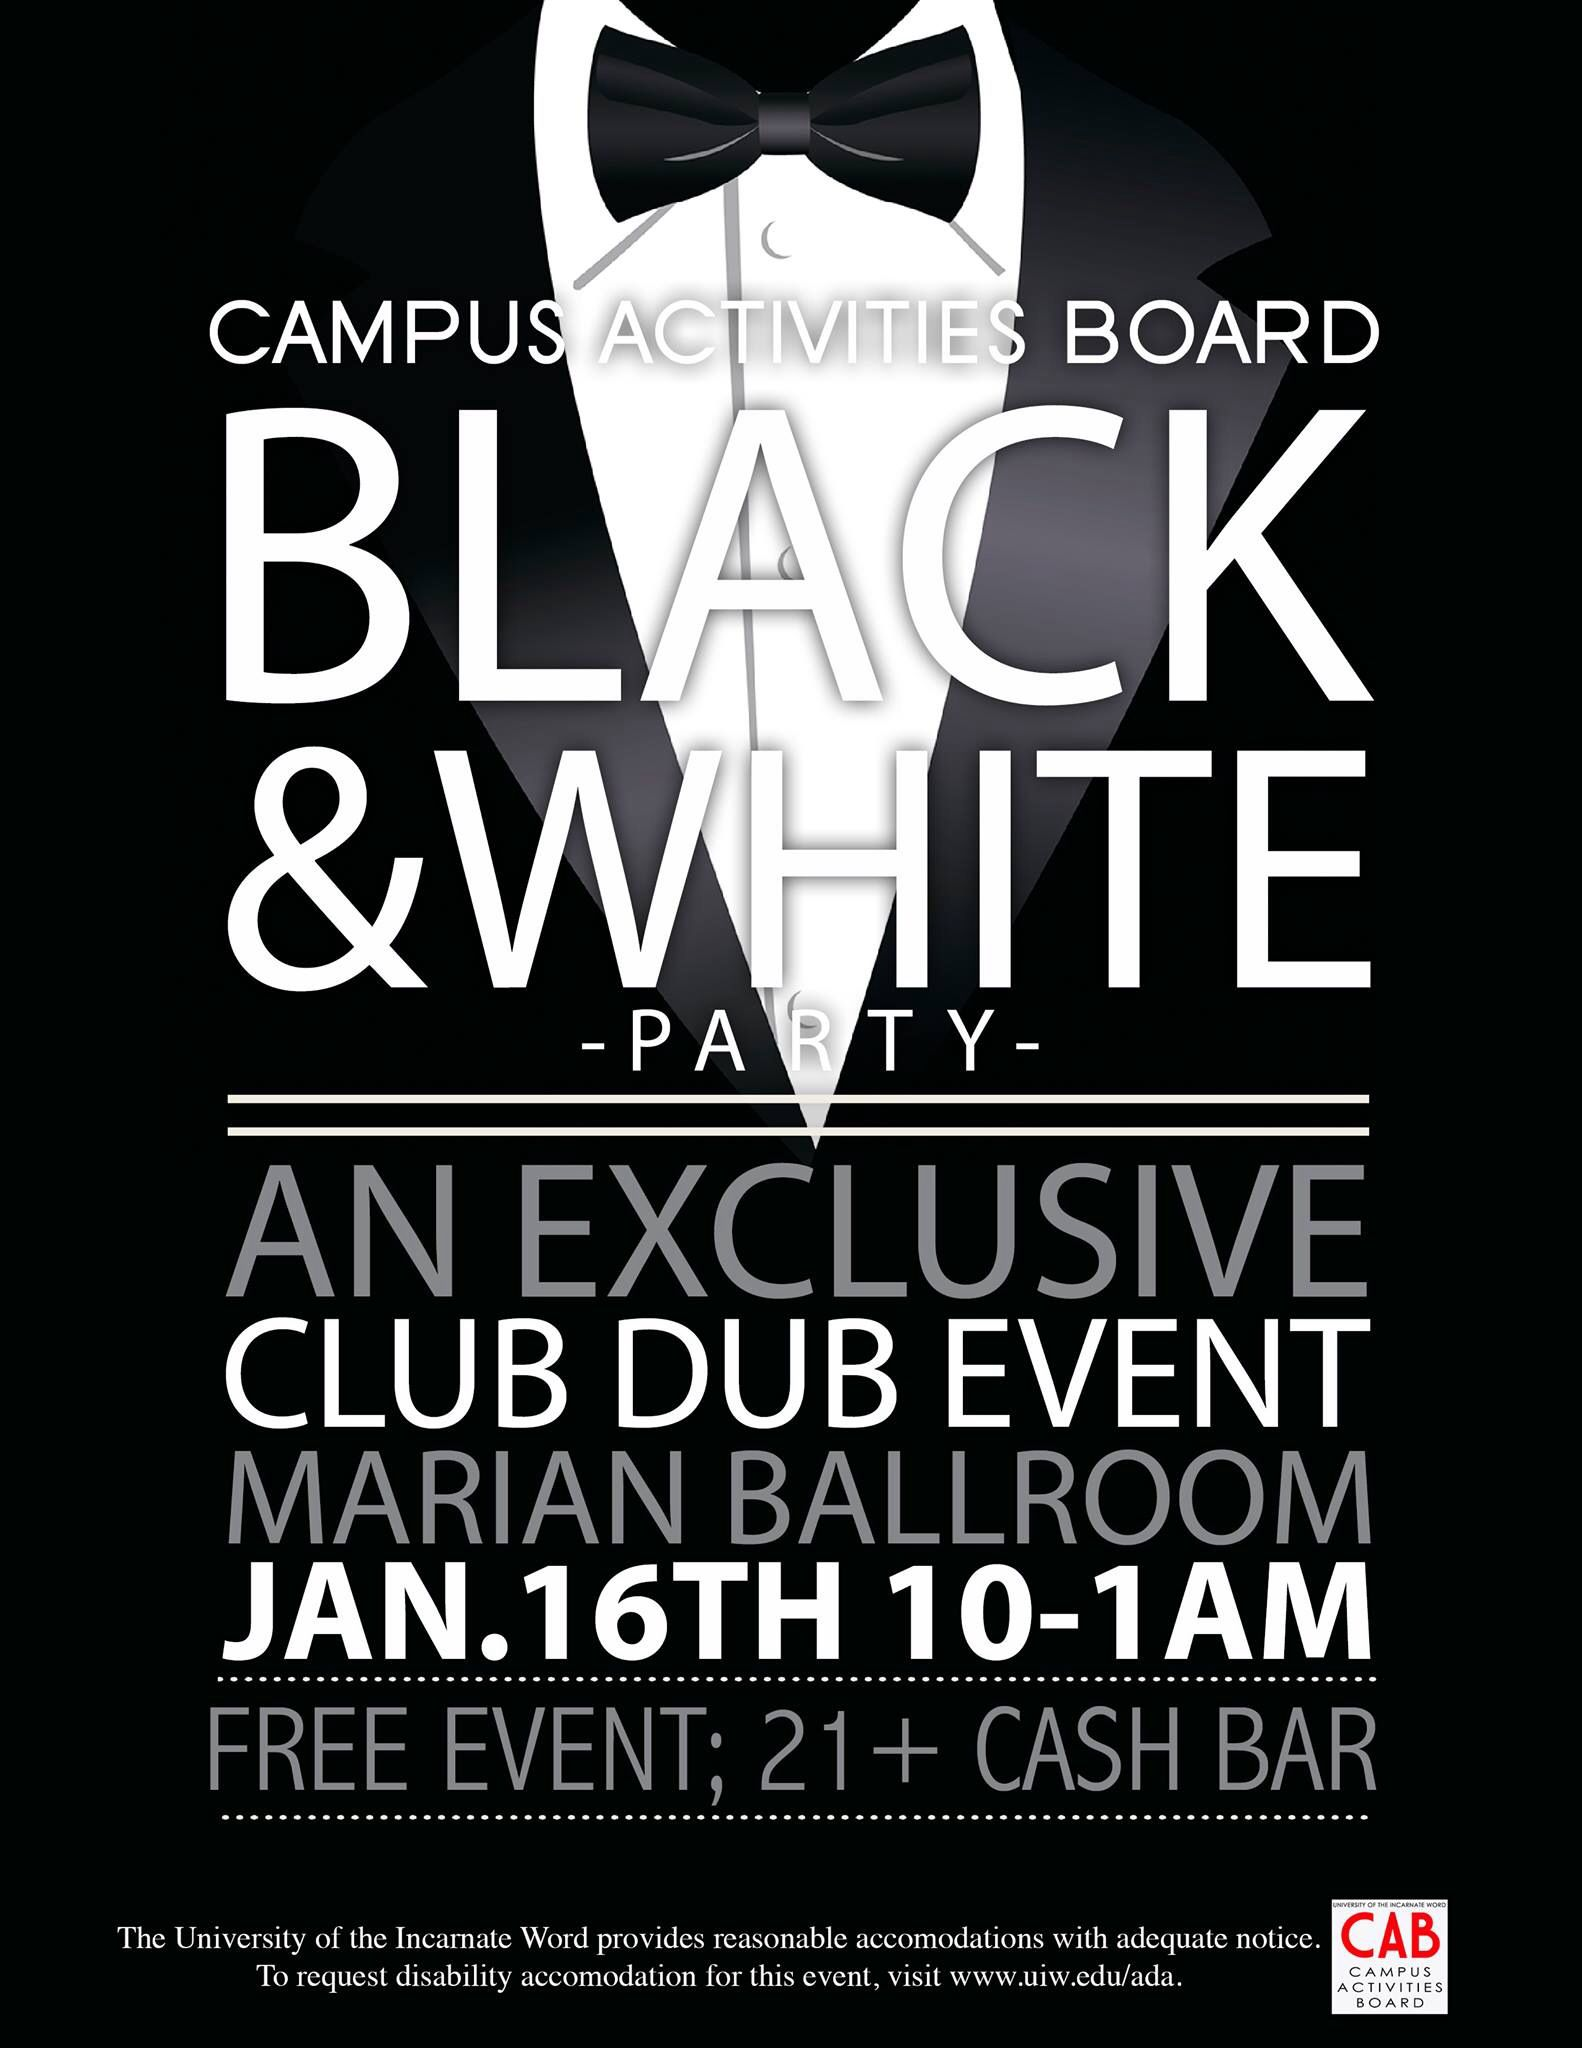 campus activities board black and white party flyer i designed rh pinterest com